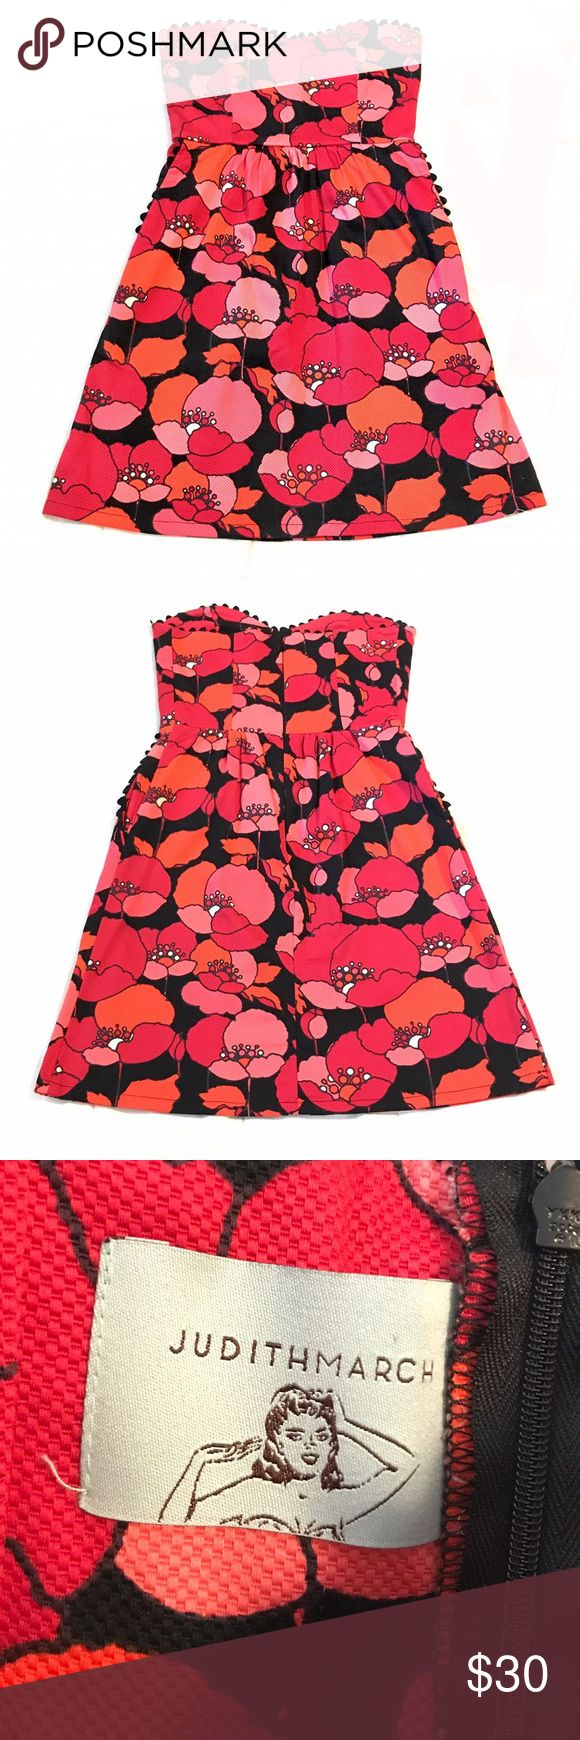 Judith March strapless dress / Size Small Judith March floral strapless dress with side pockets / Size Small / Like New / only worn once Judith March Dresses Strapless